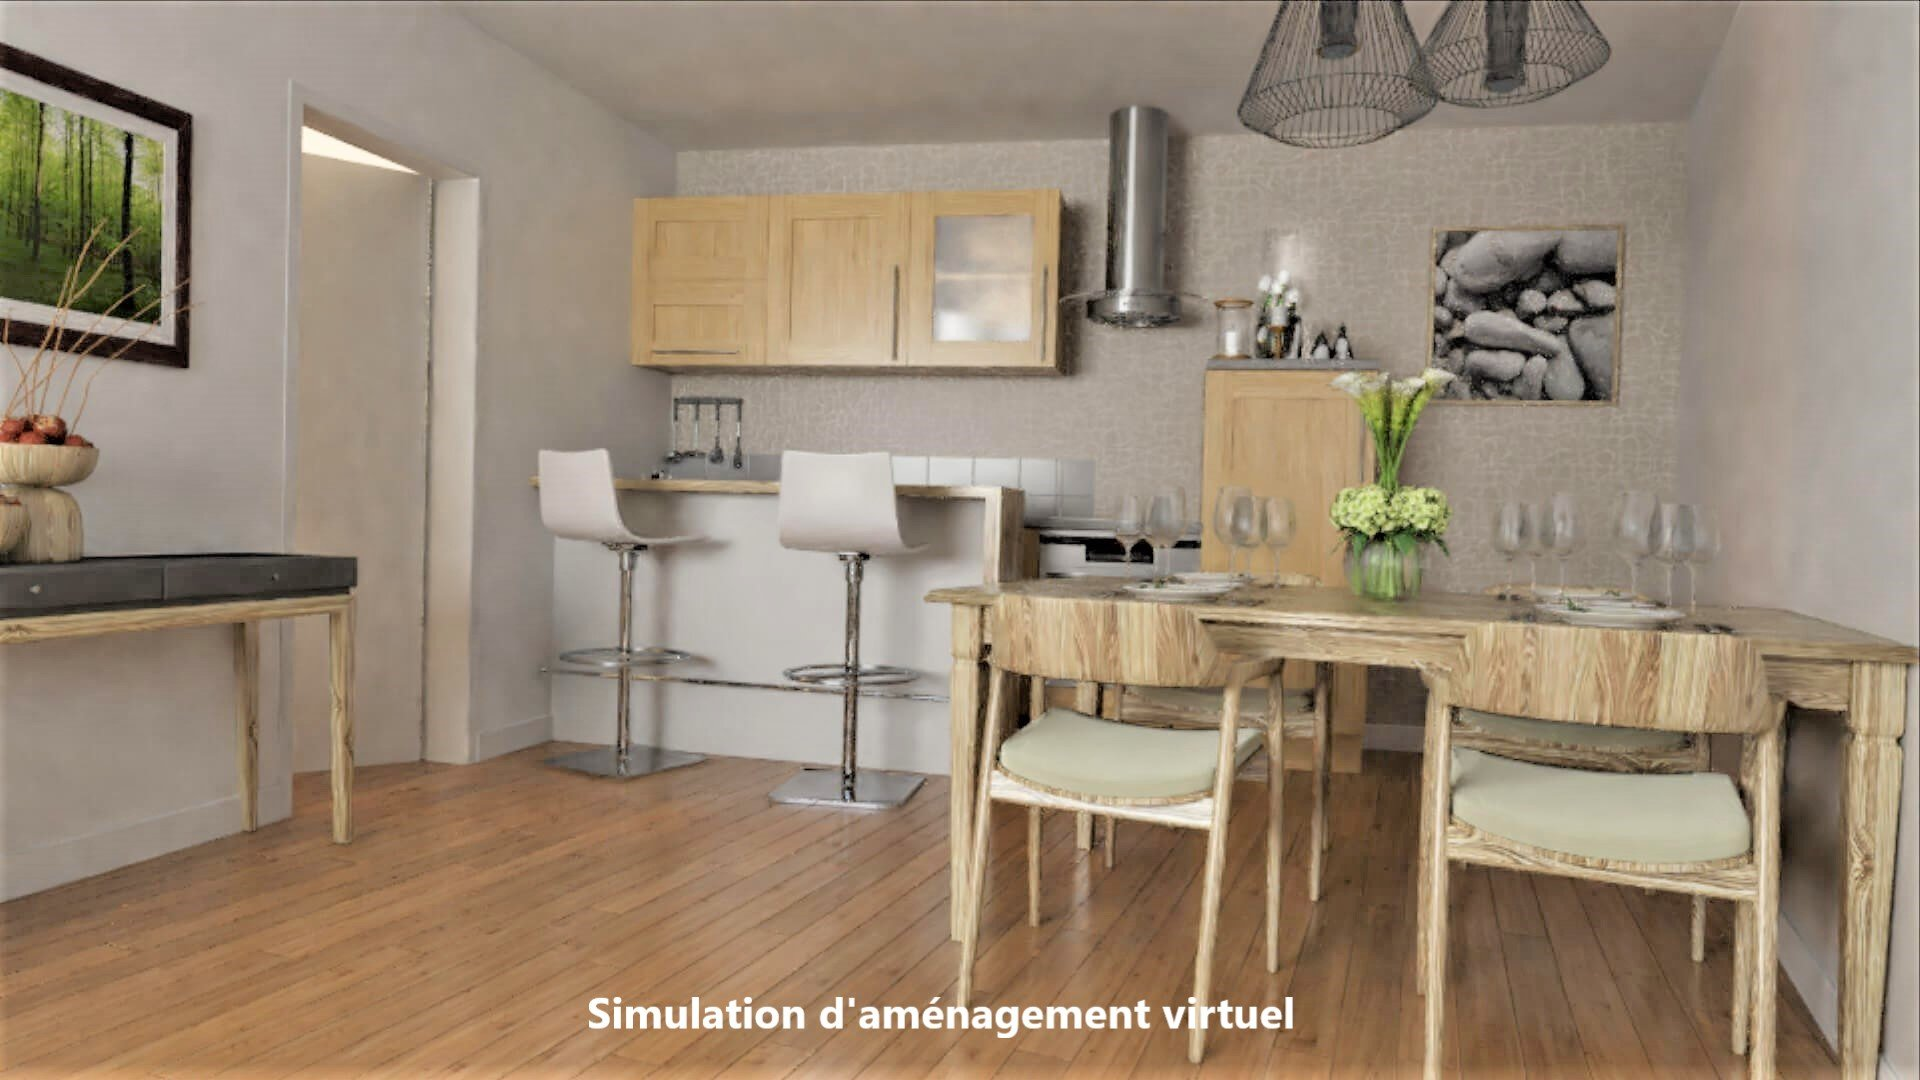 Vente appartement T3  à BEGLES - 4